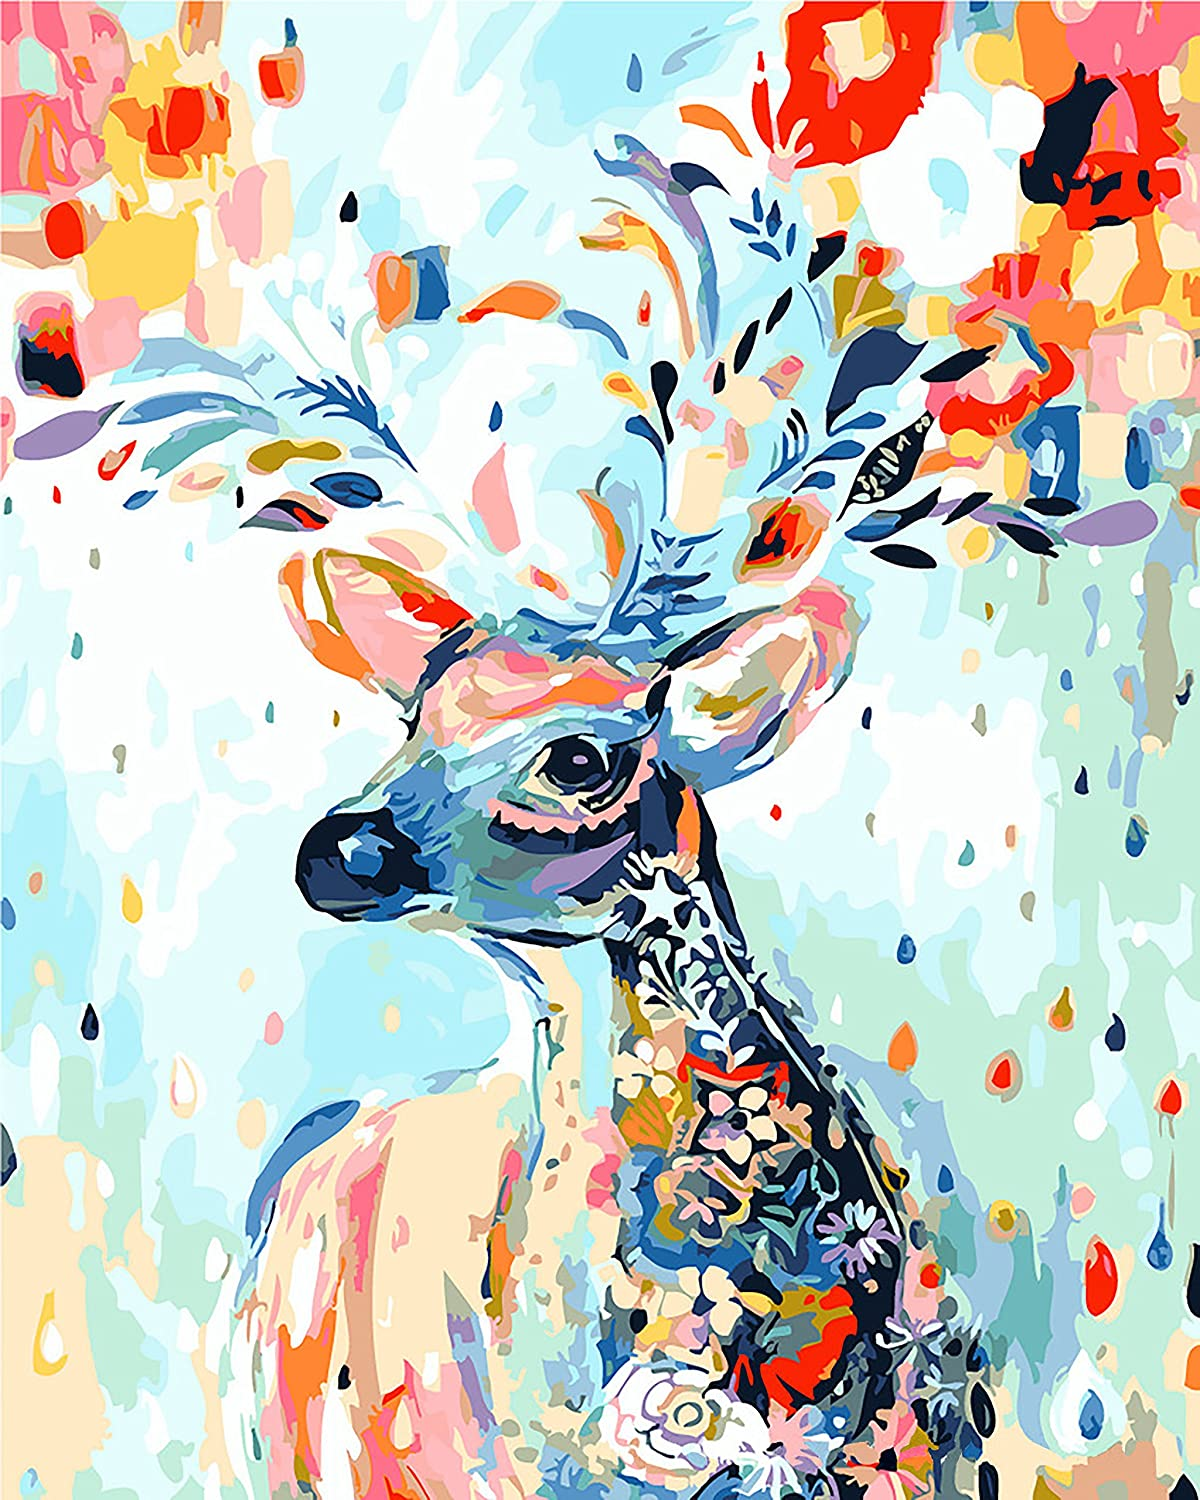 40X50CM N//O Paint by Number Kits Lamb eating flowers Diy Digital Oil Canvas Painting for Adults and Kids Home Wall Art Decor Kit with Brushes and Acrylic Pigment no frame